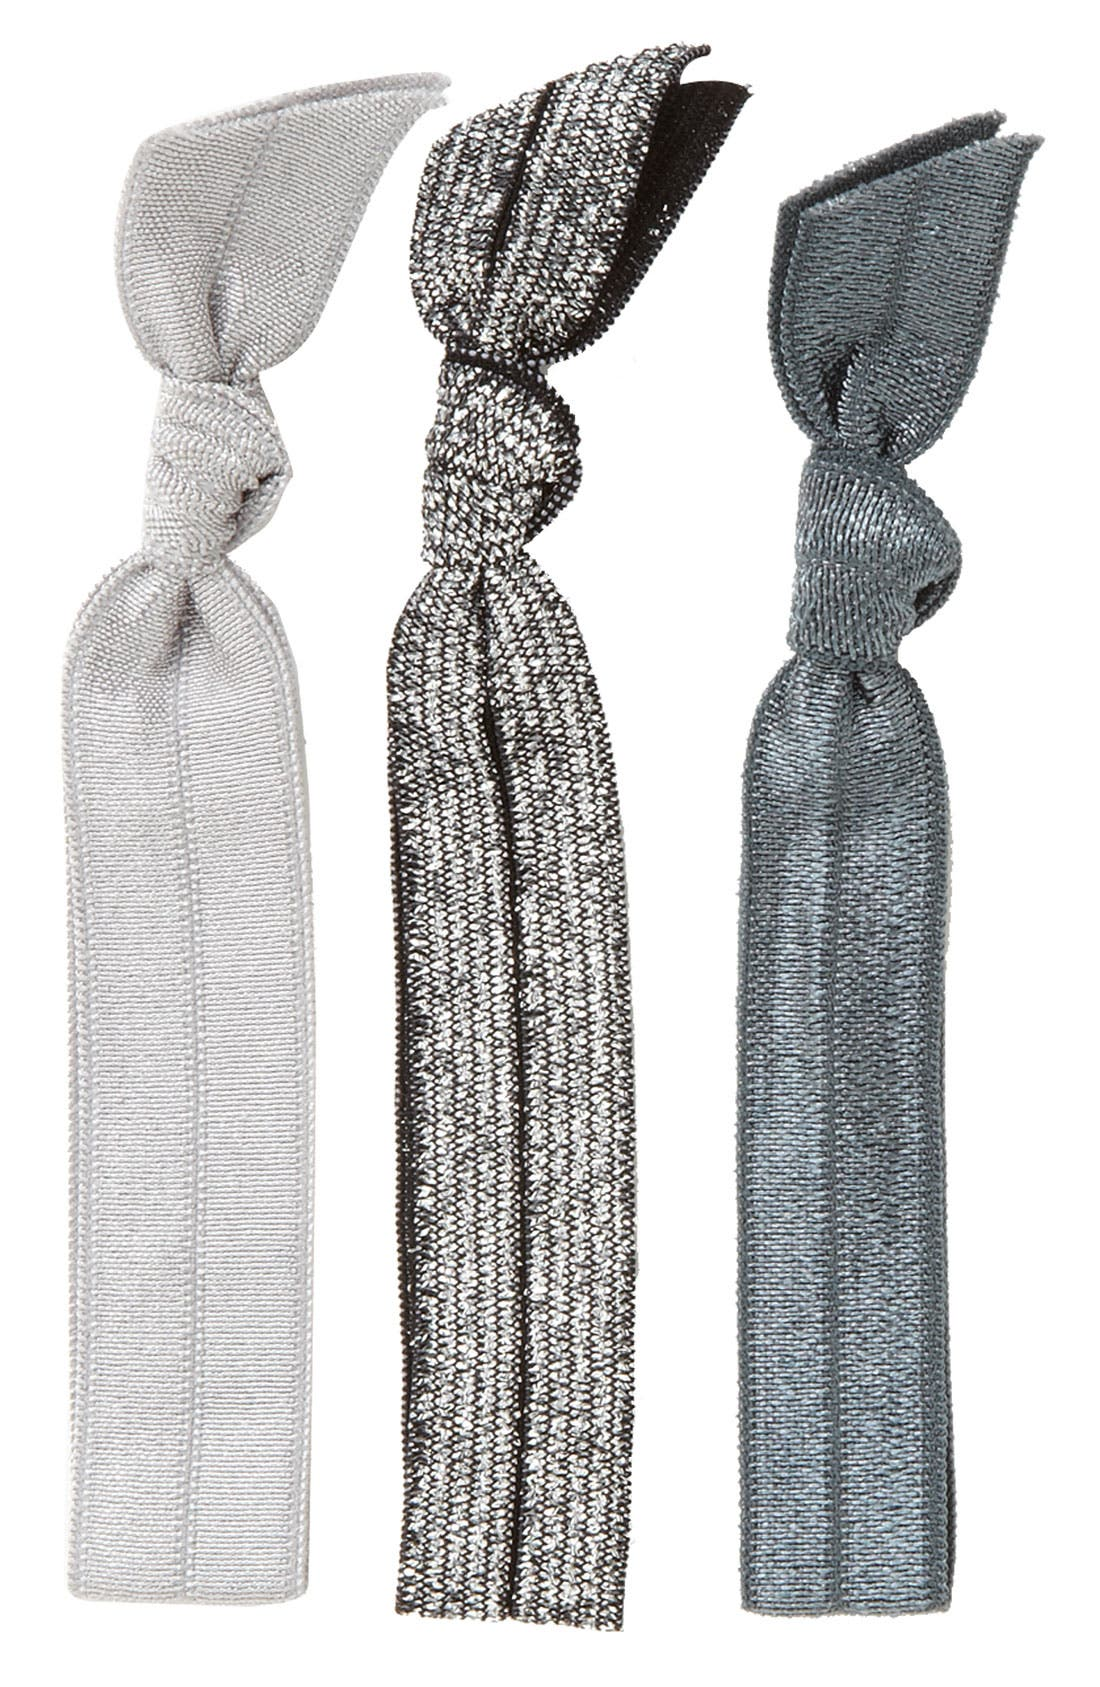 Alternate Image 1 Selected - Emi-Jay 'Silver Glitter' Hair Ties (3-Pack)